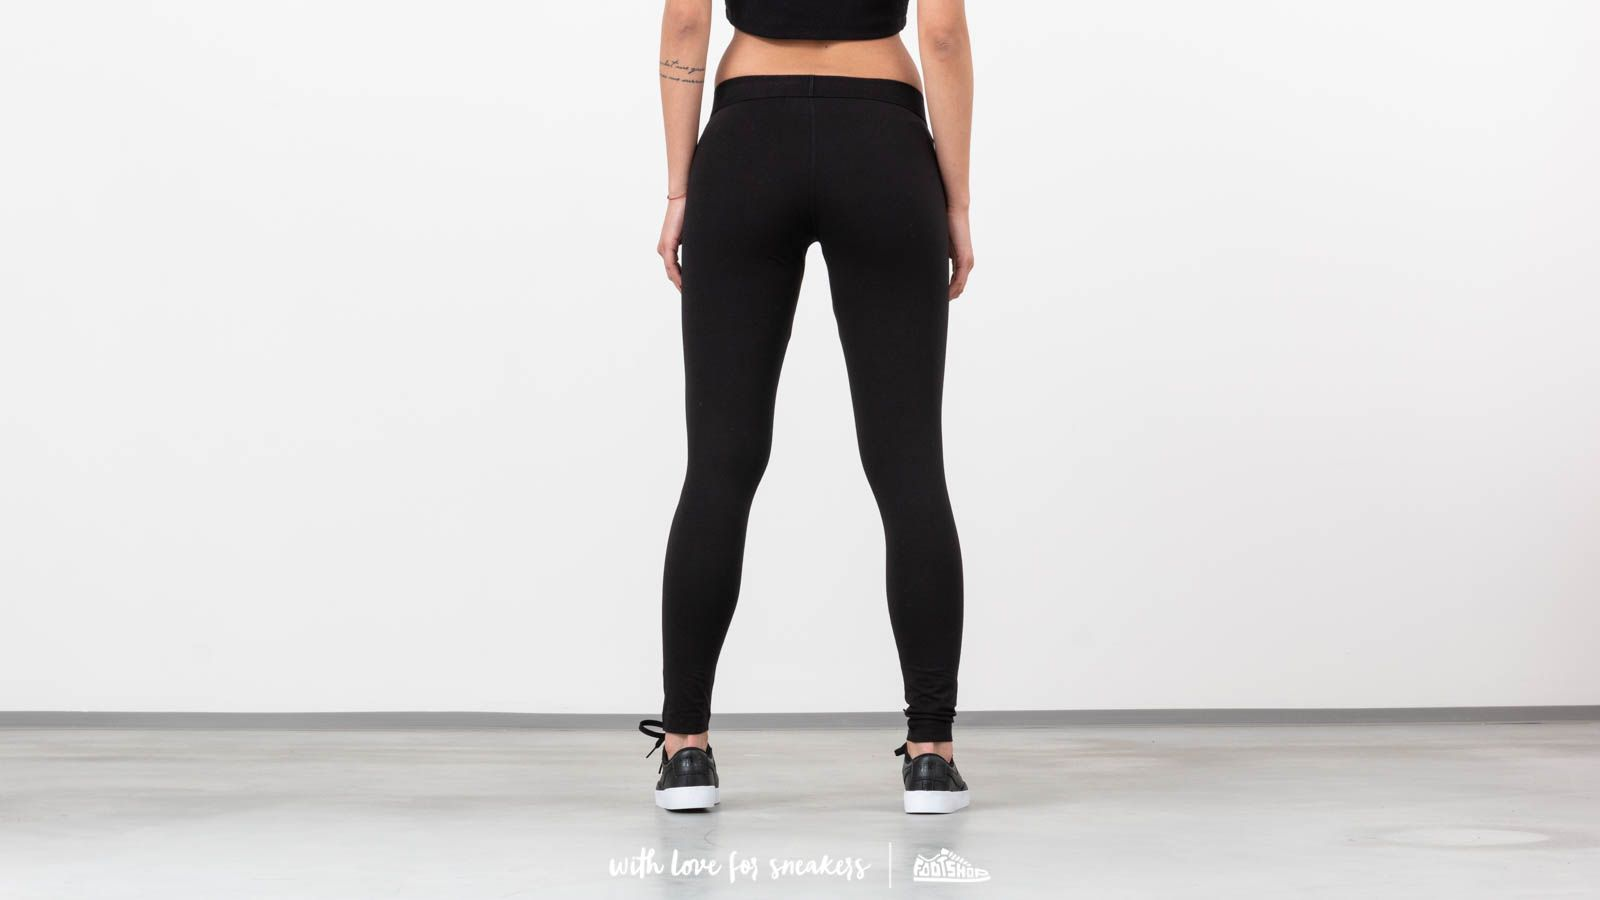 b10574270e929 Calvin Klein Underwear Women´s Legging Black at a great price 1 510 ГРН  купите